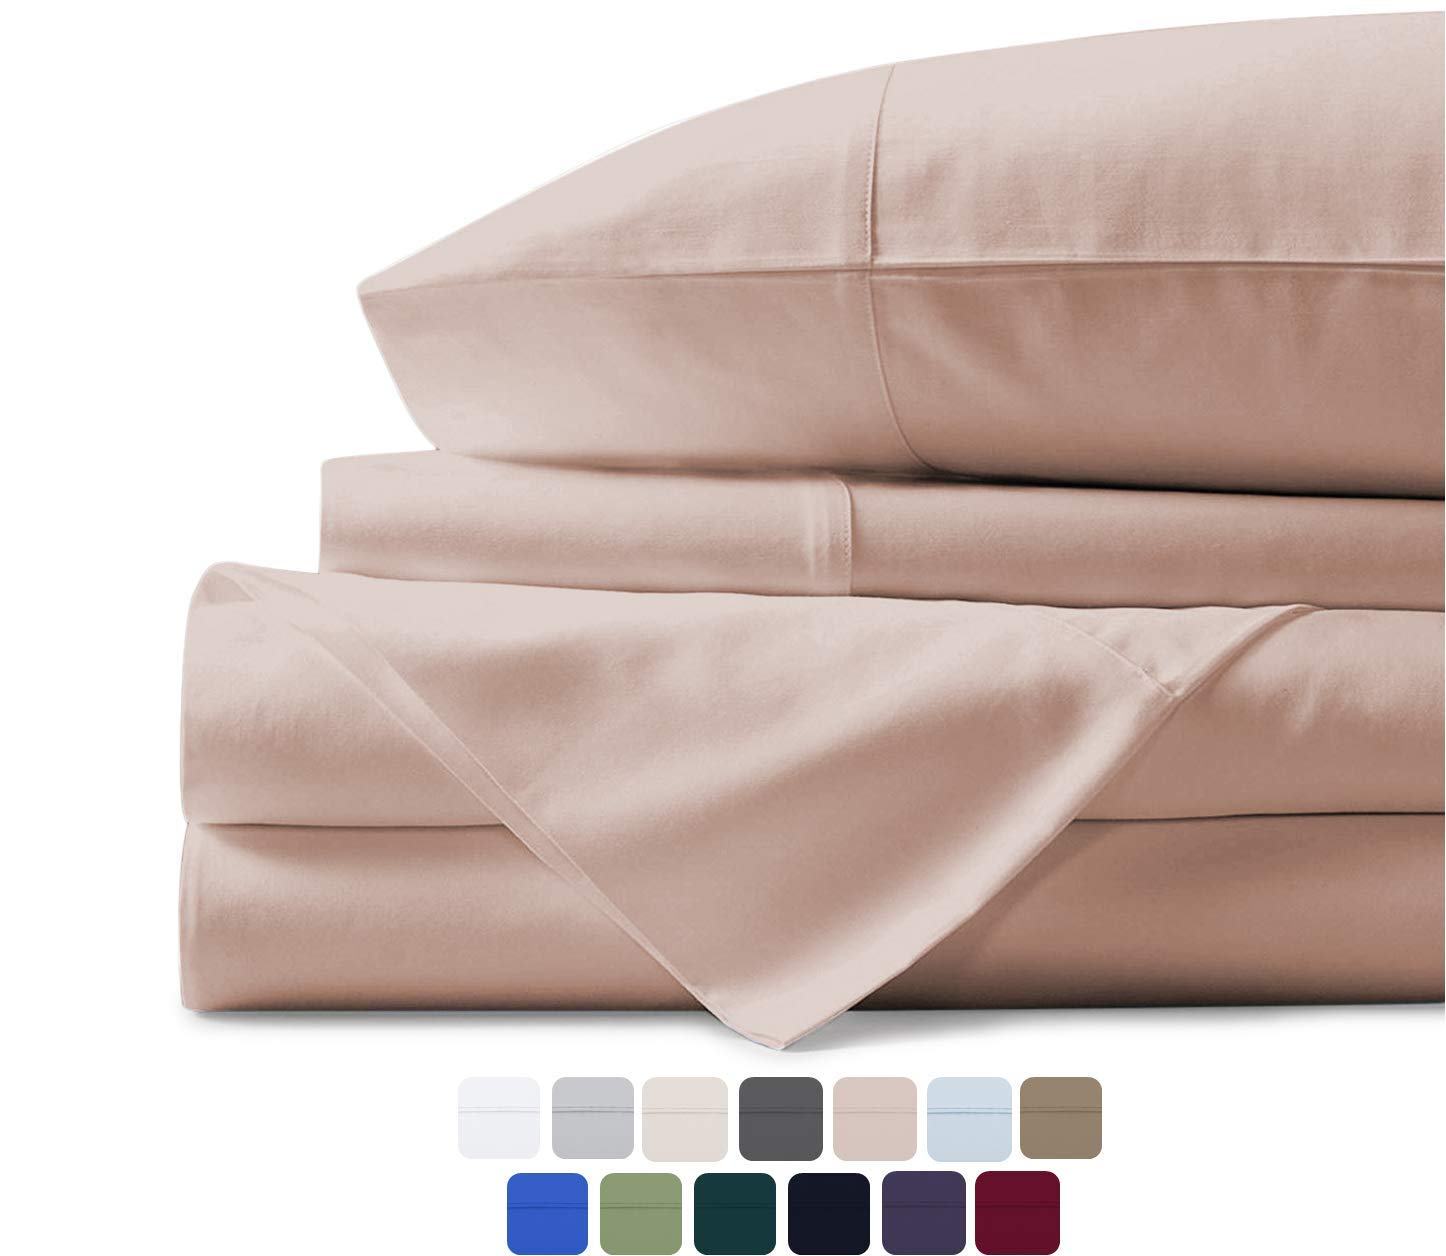 Mayfair Linen 100 Egyptian Cotton Sheets Blush King Sheets Set 600 Thread Count Long Staple Cotton Sateen Weave For Soft And Silky Feel Fits Mattress Upto 18 Deep Pocket